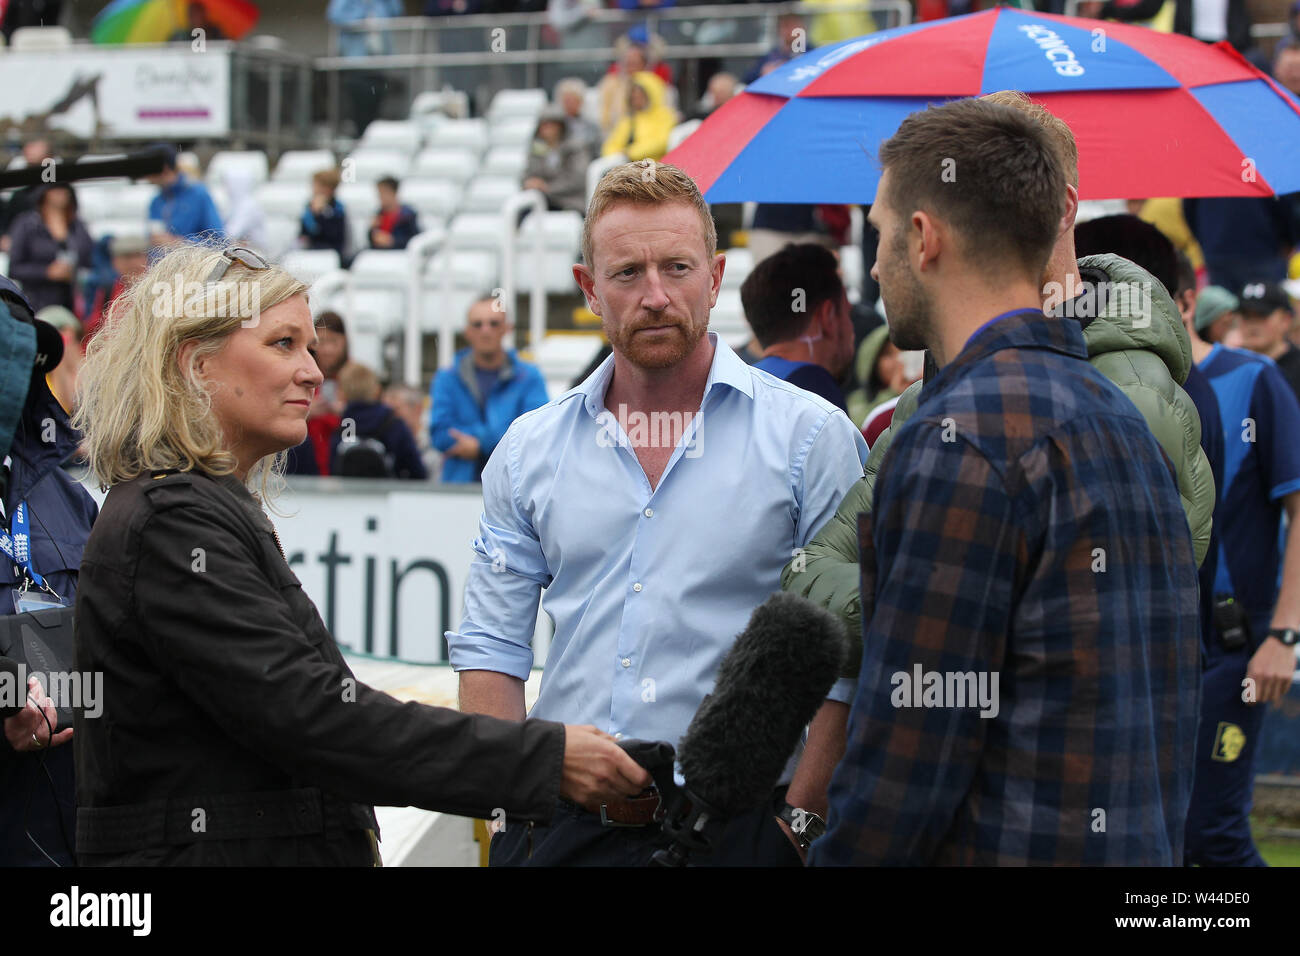 CHESTER LE STREET, ENGLAND. 19th July 2019. BBC Presenter Dawn Thewlis with Paul Collingwood, Ben Stokes and Mark Wood during the Vitality T20 Blast match between Durham County Cricket Club and Northamptonshire County Cricket Club at Emirates Riverside, Chester le Street on Friday 19th July 2019. (Credit: Mark Fletcher   MI News ) Credit: MI News & Sport /Alamy Live News - Stock Image